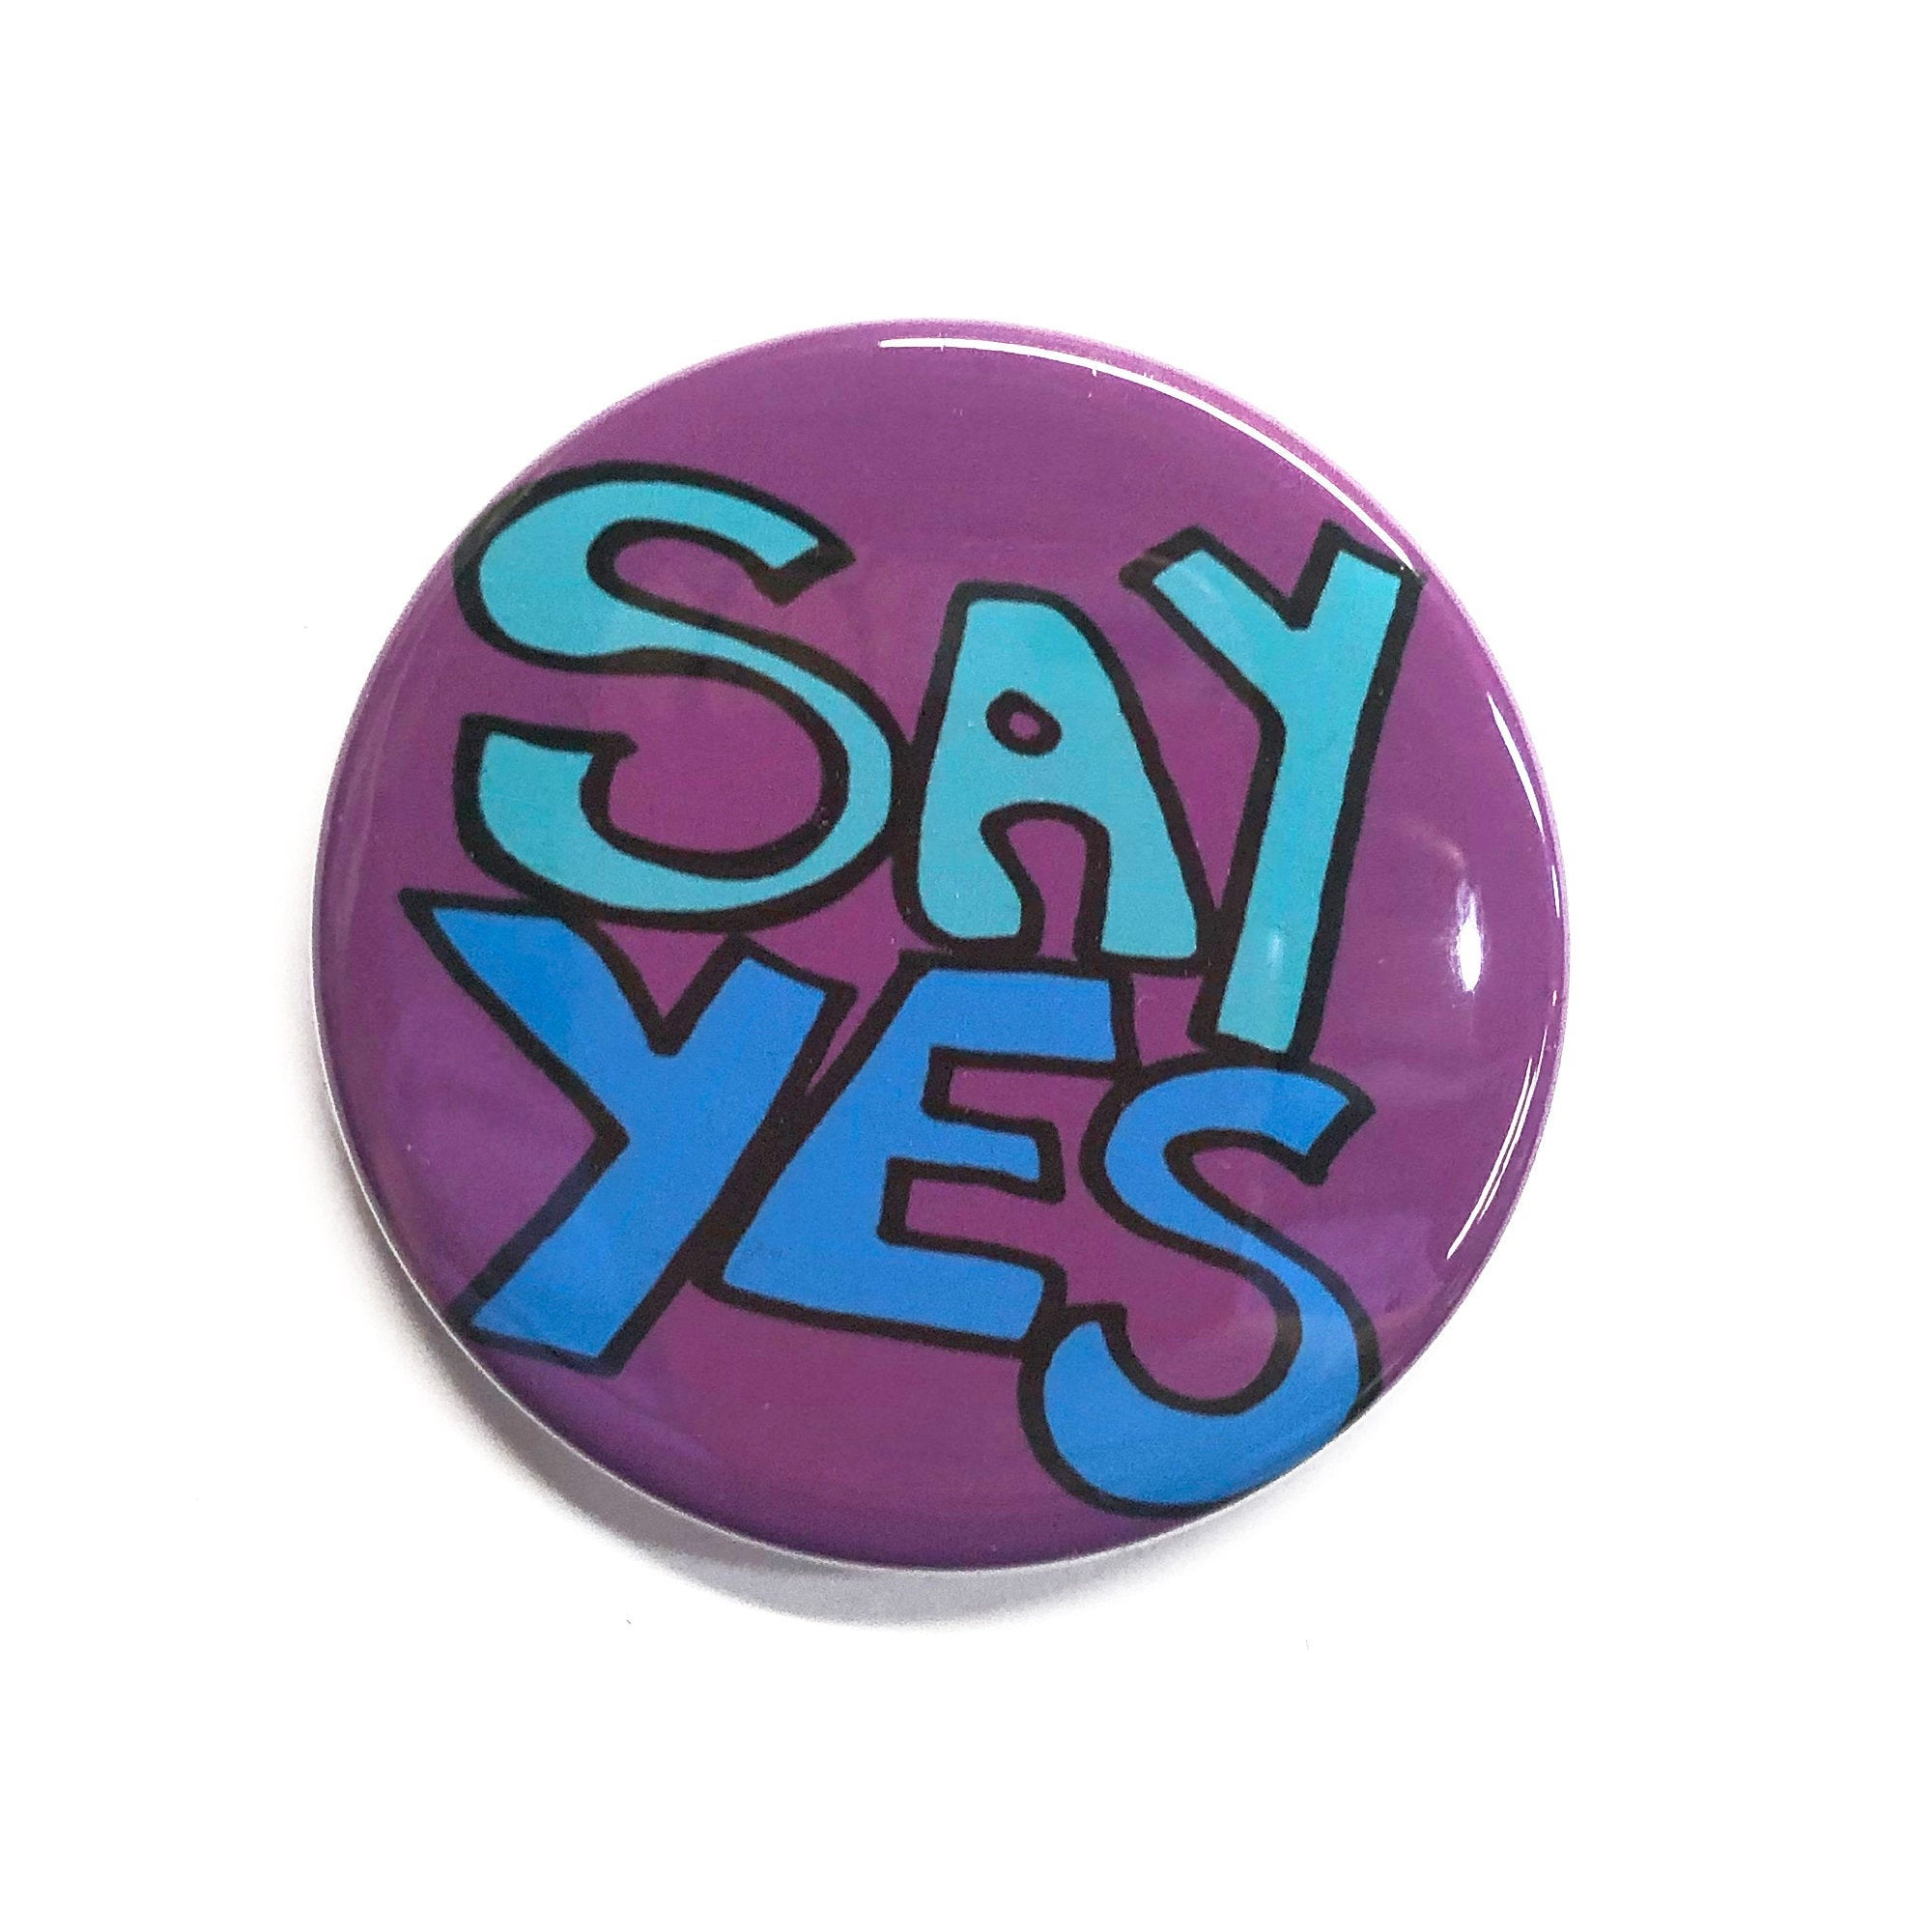 Say Yes Magnet, Pinback Button or Pocket Mirror - Positive Affirmation